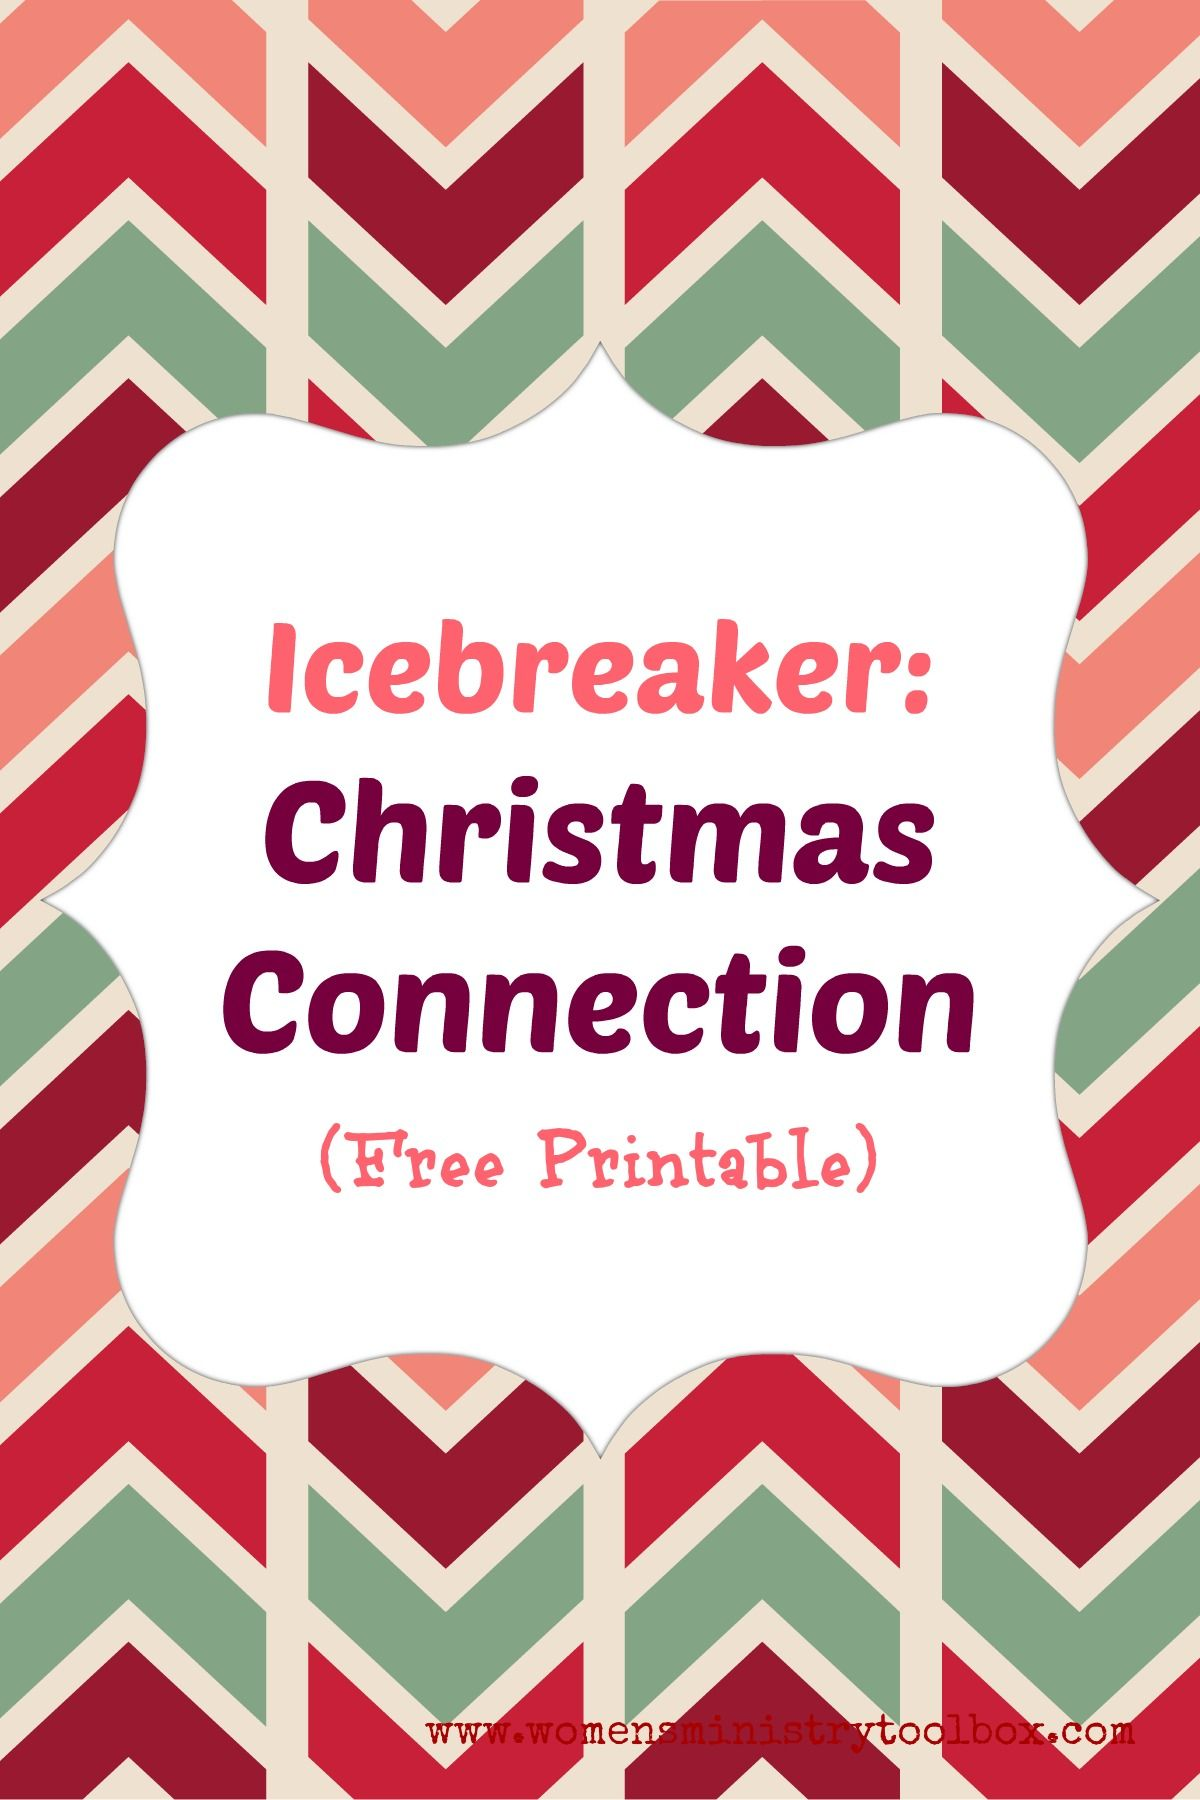 Icebreaker Christmas Connection 1 200 1 800 Pixels